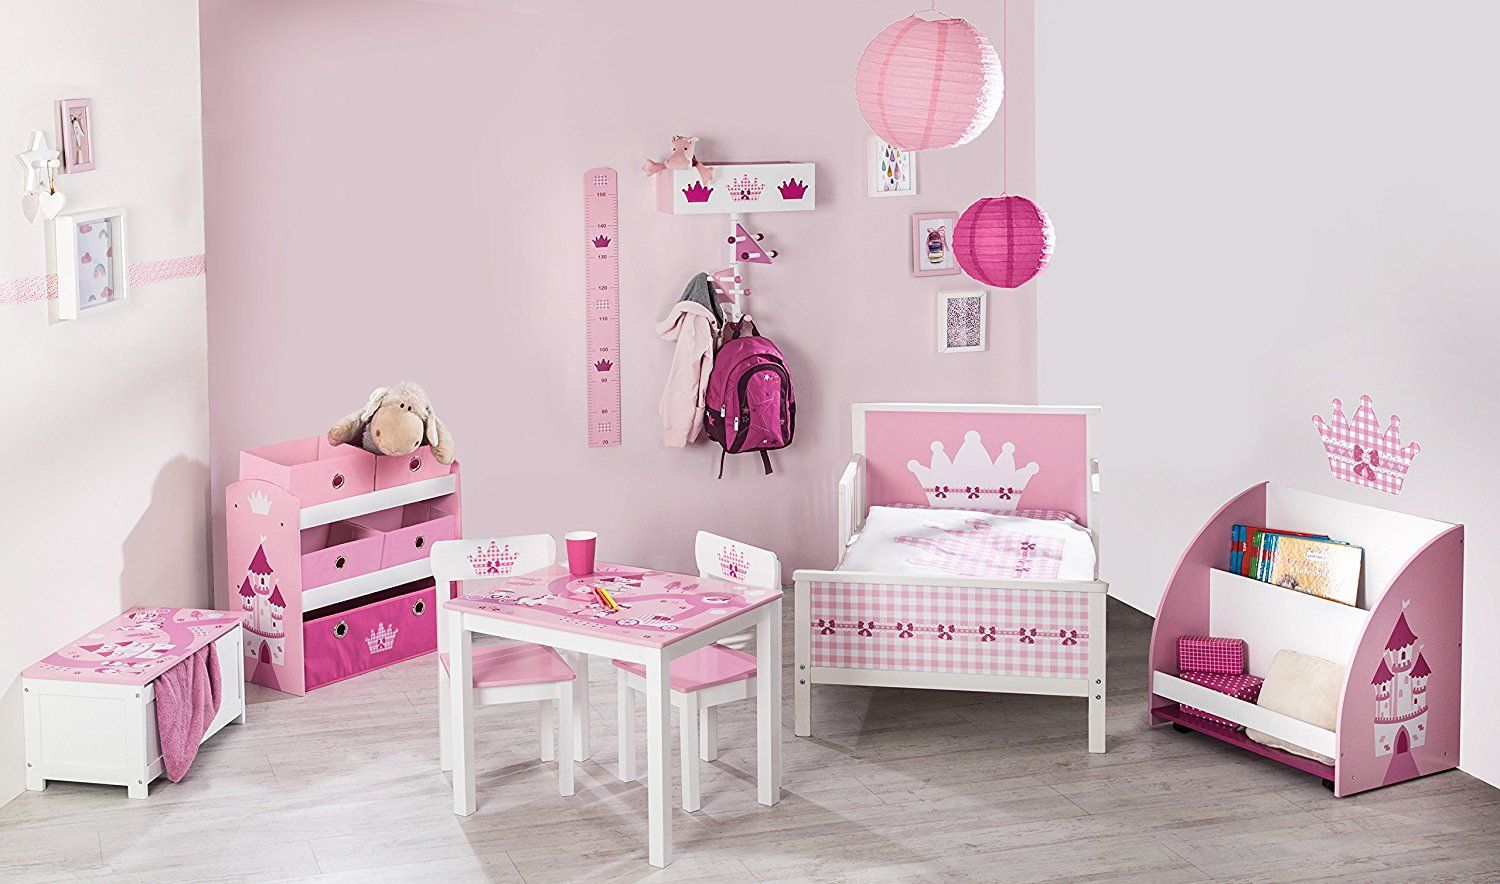 werbung rosa kinderzimmer f r eine kleine prinzessin kinderzimmer komplettsets rosa. Black Bedroom Furniture Sets. Home Design Ideas